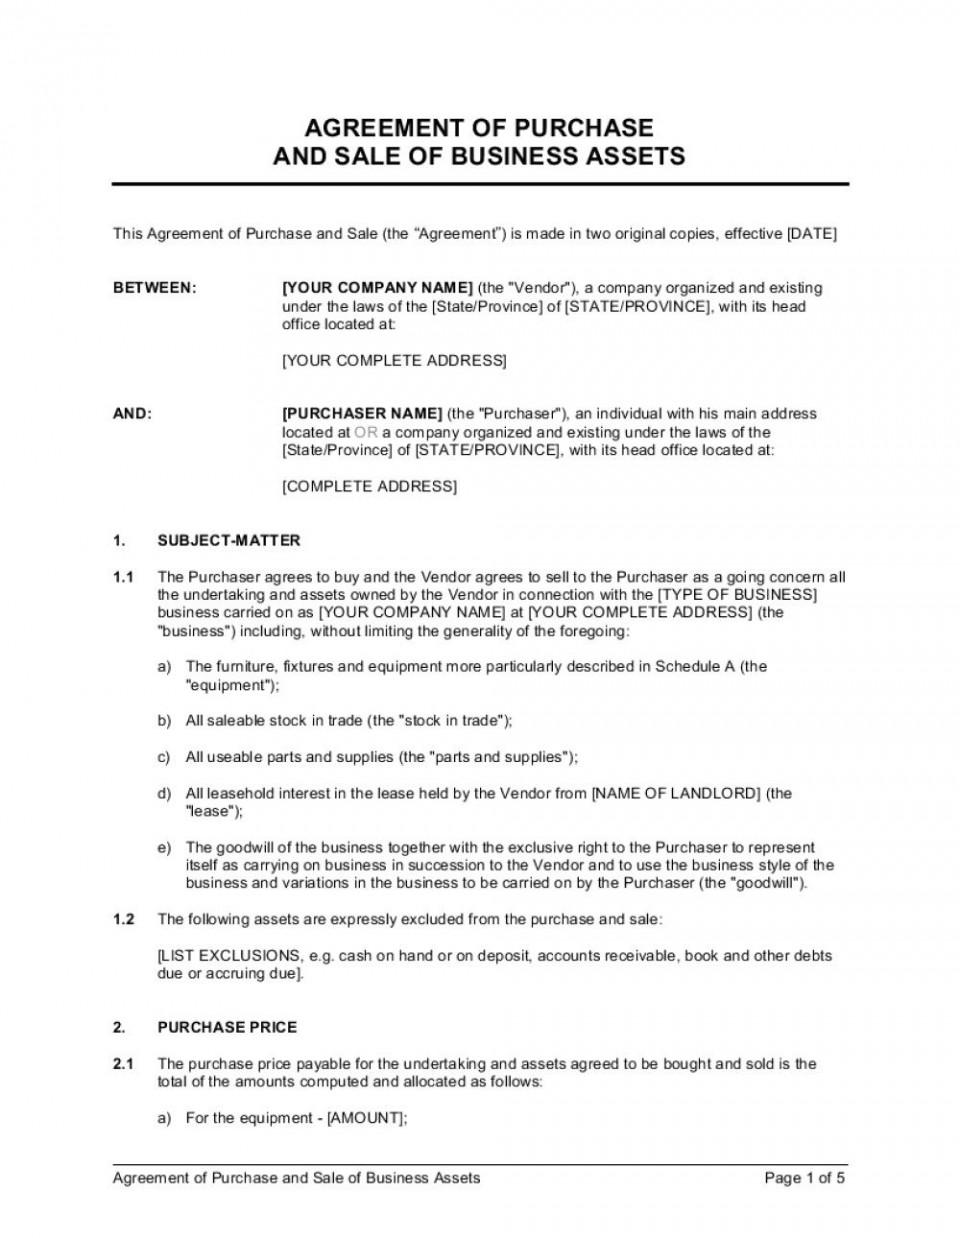 003 Beautiful Busines Sale Agreement Template Inspiration  Western Australia Free Uk Download South Africa960